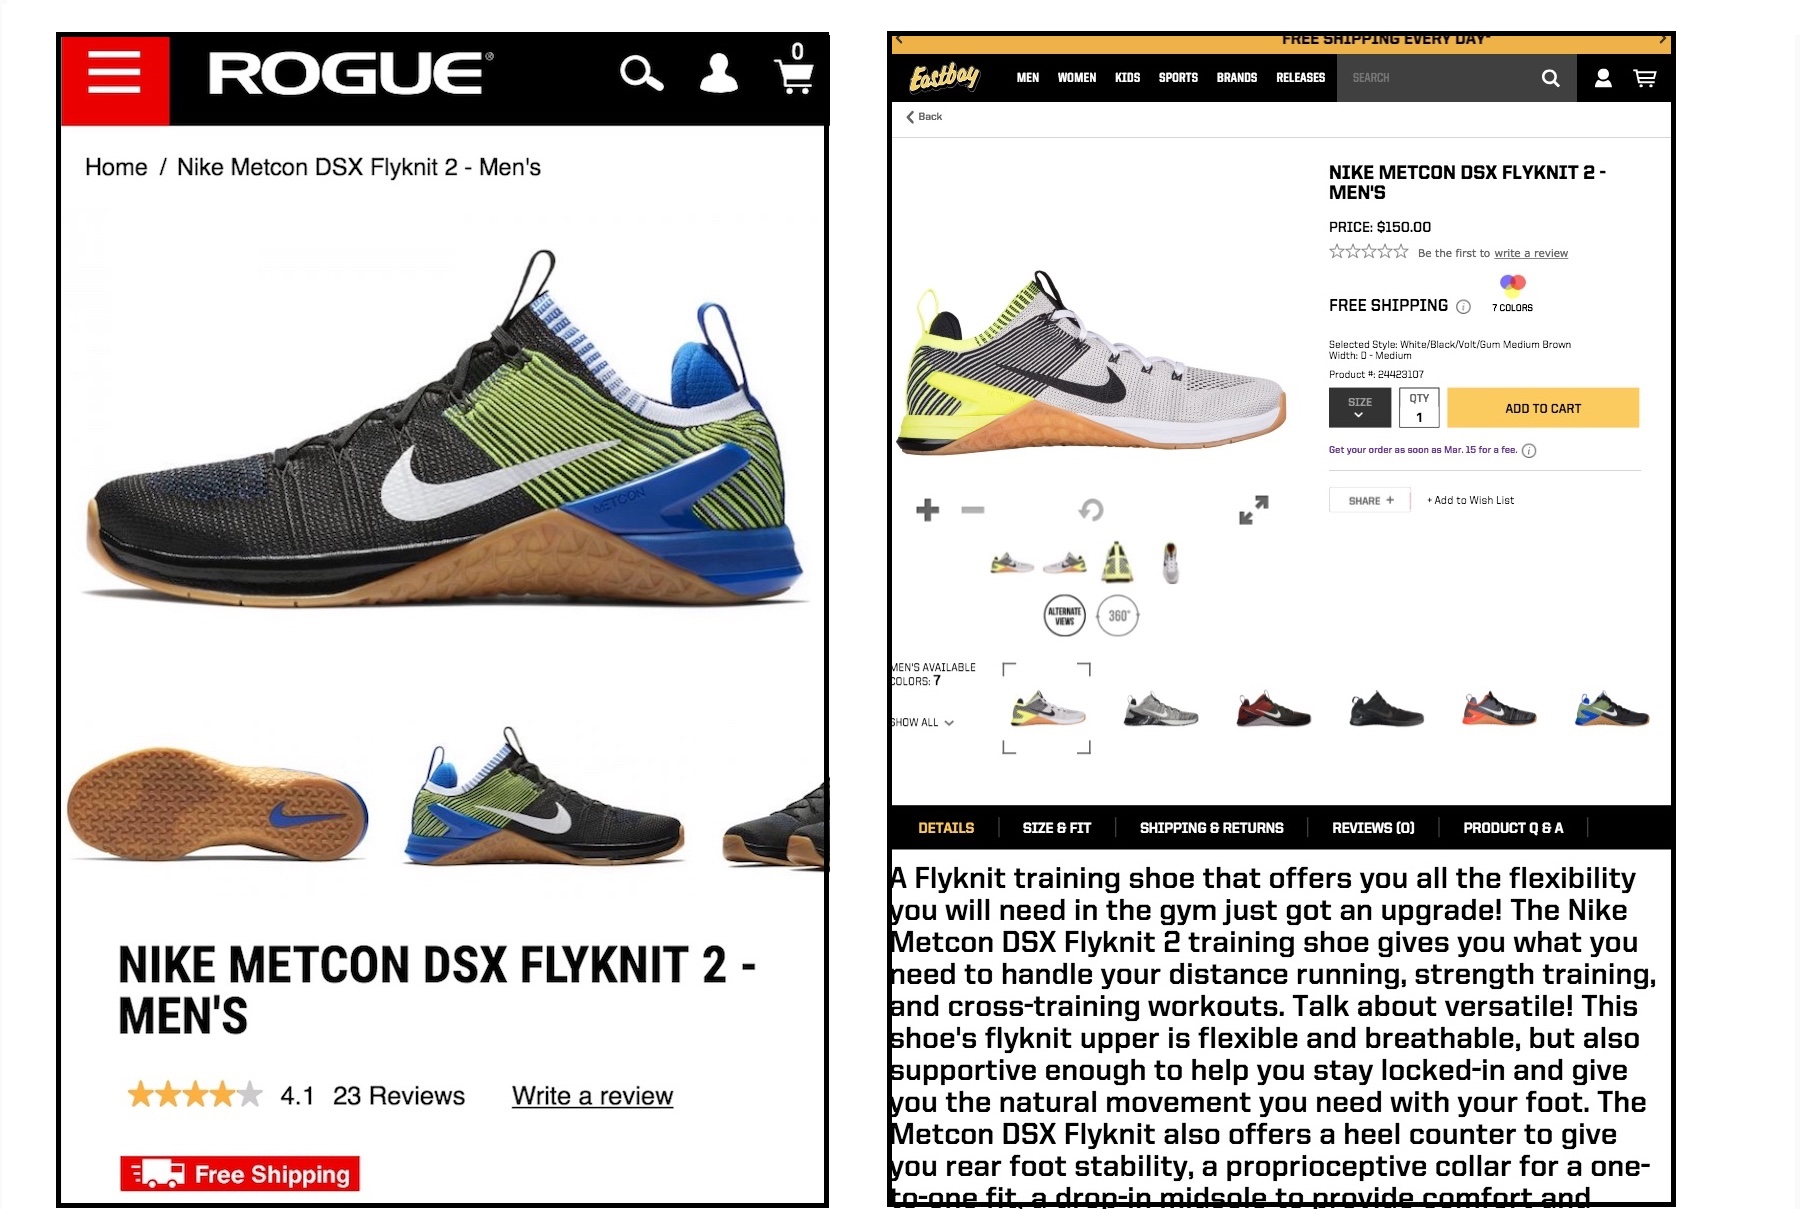 Screenshot showing product page and its description